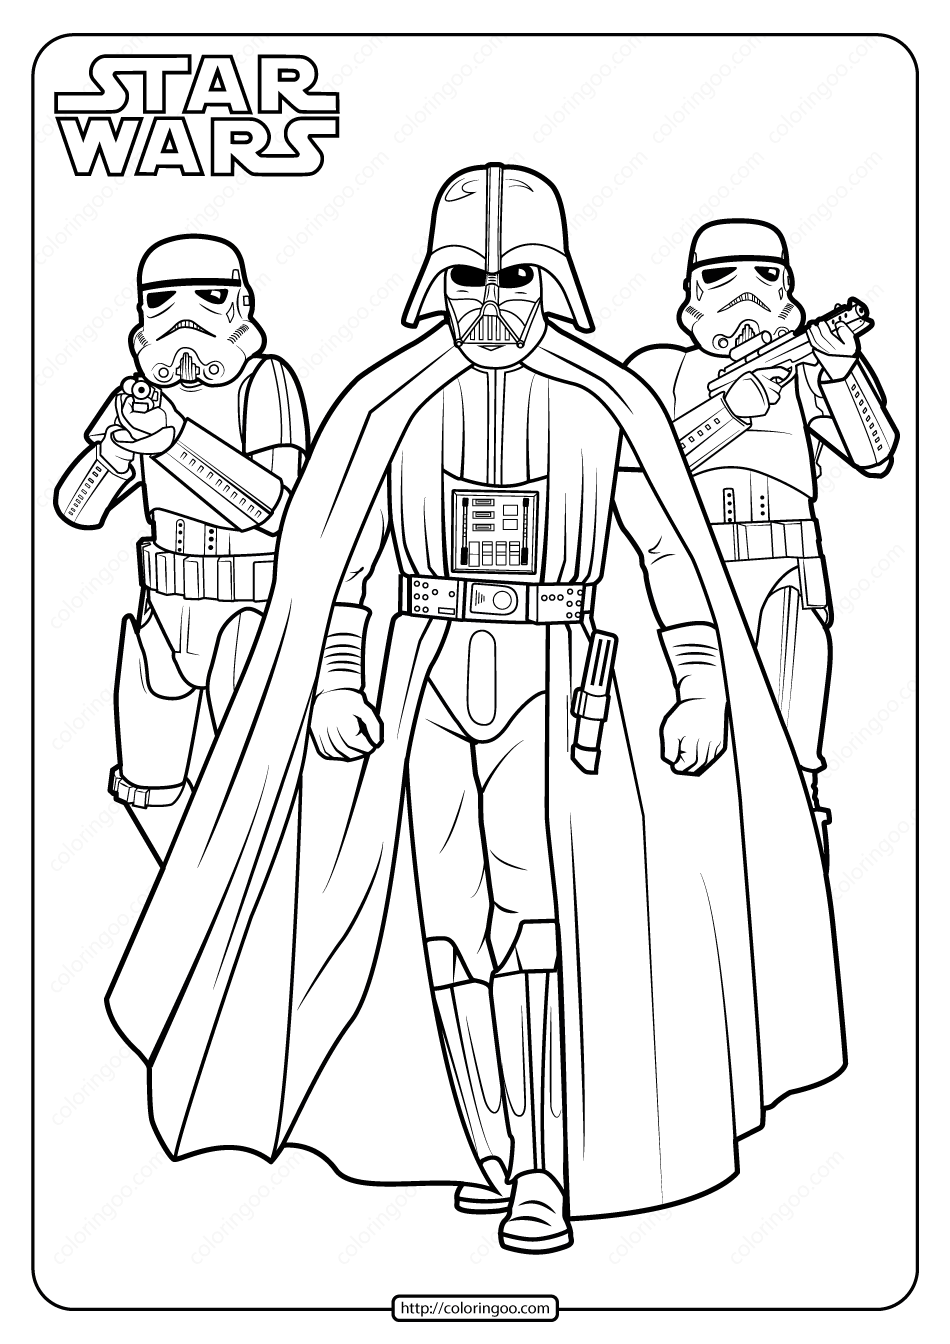 darth vader coloring pages darth vader coloring pages to print  coloring home pages coloring darth vader